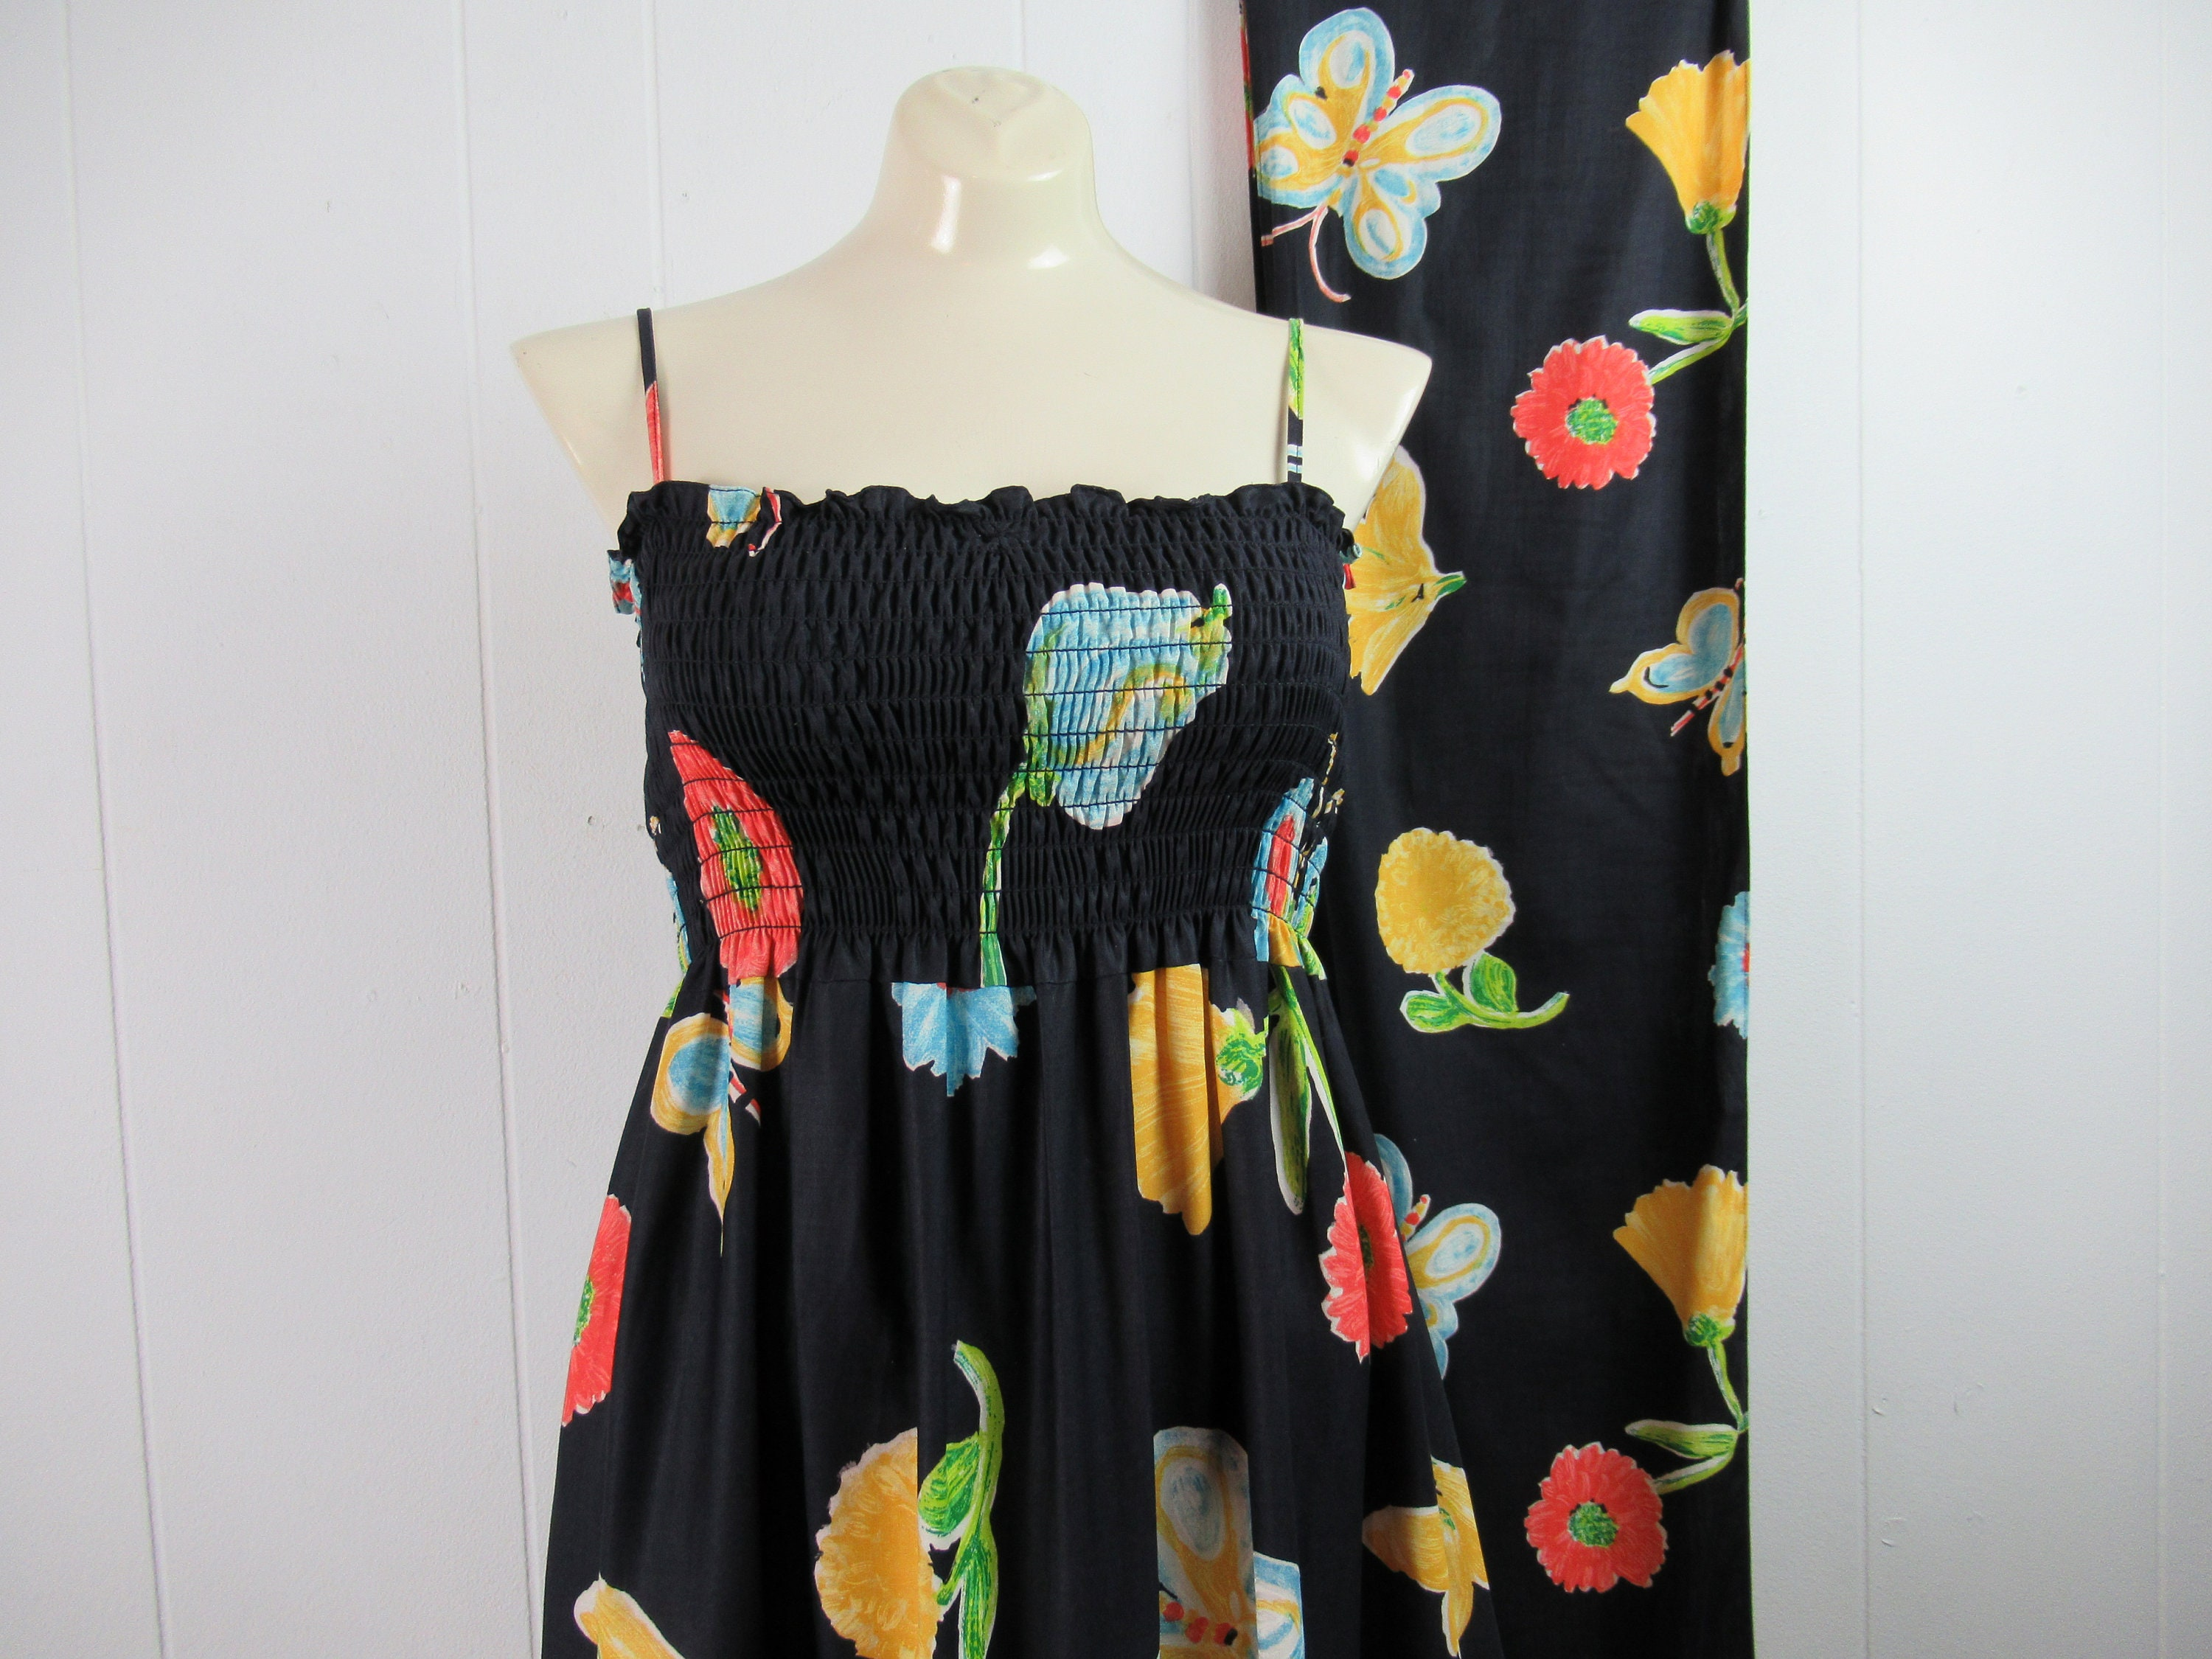 Vintage Scarf Styles -1920s to 1960s Vintage Dress, 1970S Butterfly Summer Dress With Scarf, Vintage Clothing, Size Small, Medium $225.00 AT vintagedancer.com